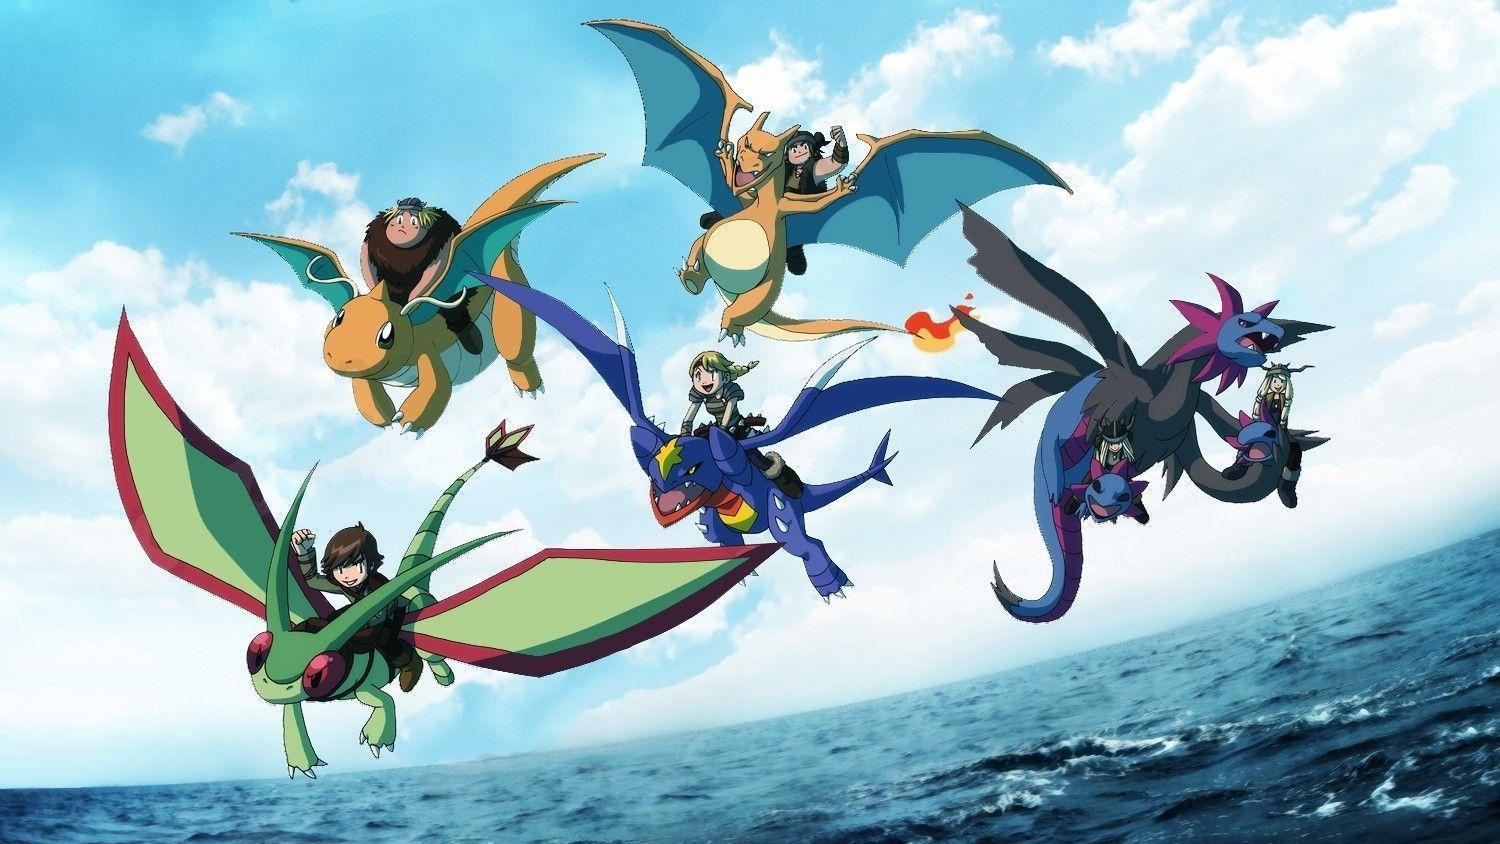 Pokemon how to train your dragon flygon charizard dragonite hiccup